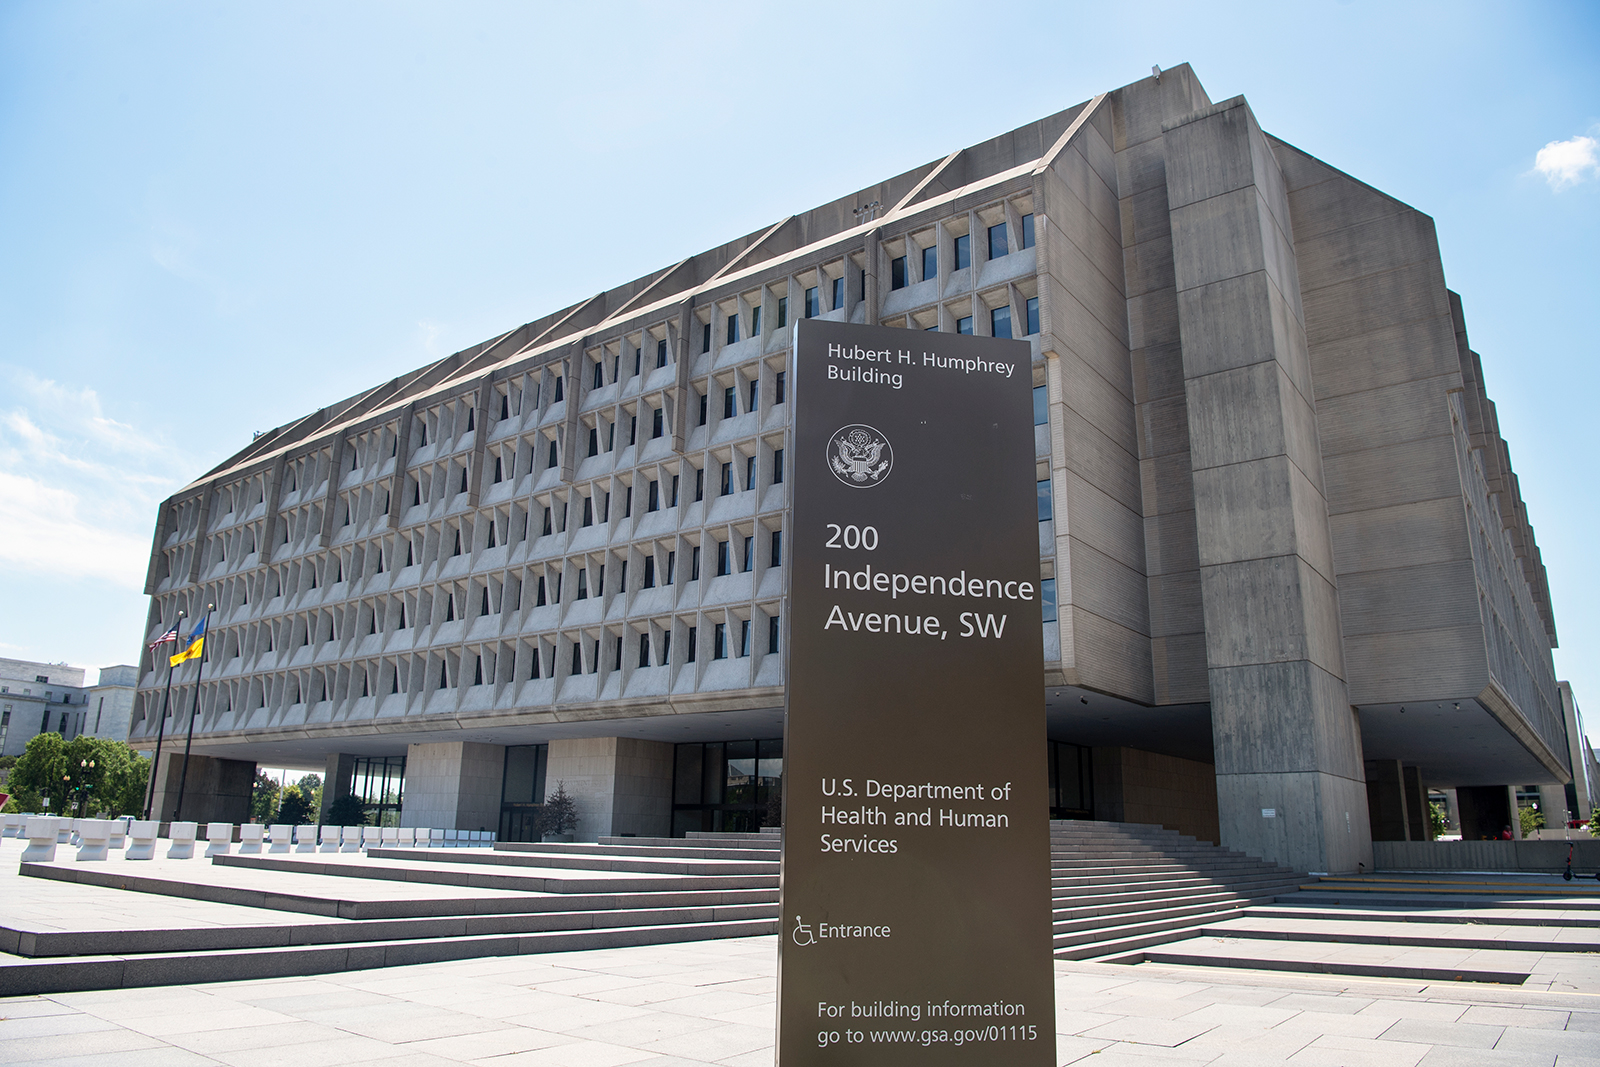 A general view of US Health and Human Services Department headquarters in Washington, D.C.